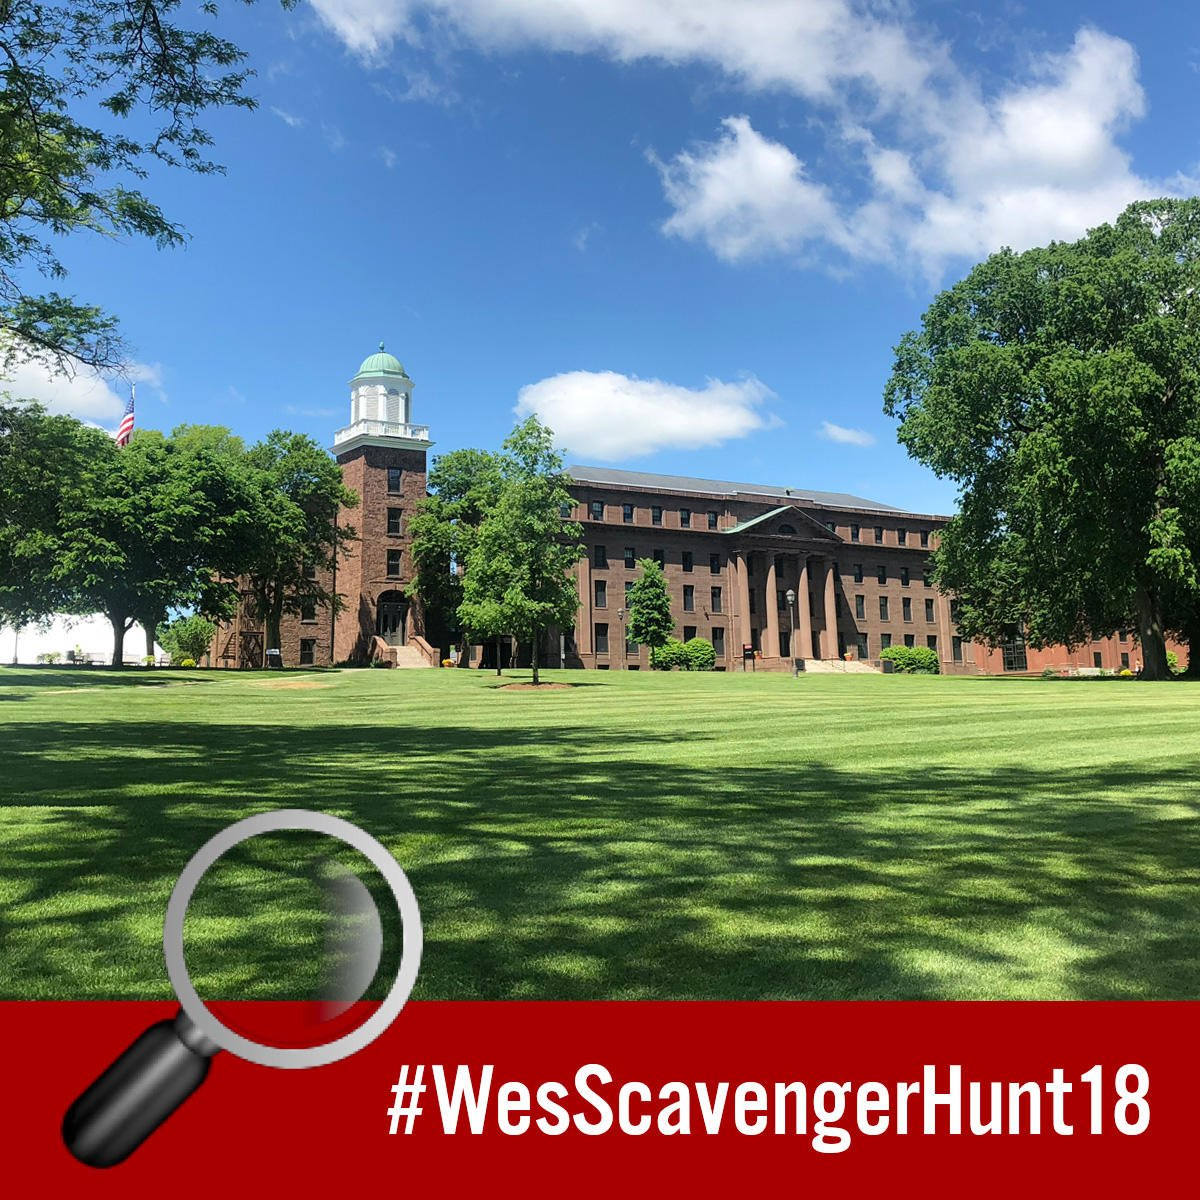 test Twitter Media - 🔍 Clue 3: Take a pic of the house on campus that was once inhabited by author-illustrator Laurent de Brunhoff, best known for continuing  Babar the Elephant books. 🐘  Hint: @summeratwes  #WesScavengerHunt18 #NationalScavengerHuntDay    More clues: https://t.co/iwQIXnDb7K https://t.co/rBzeSROArM